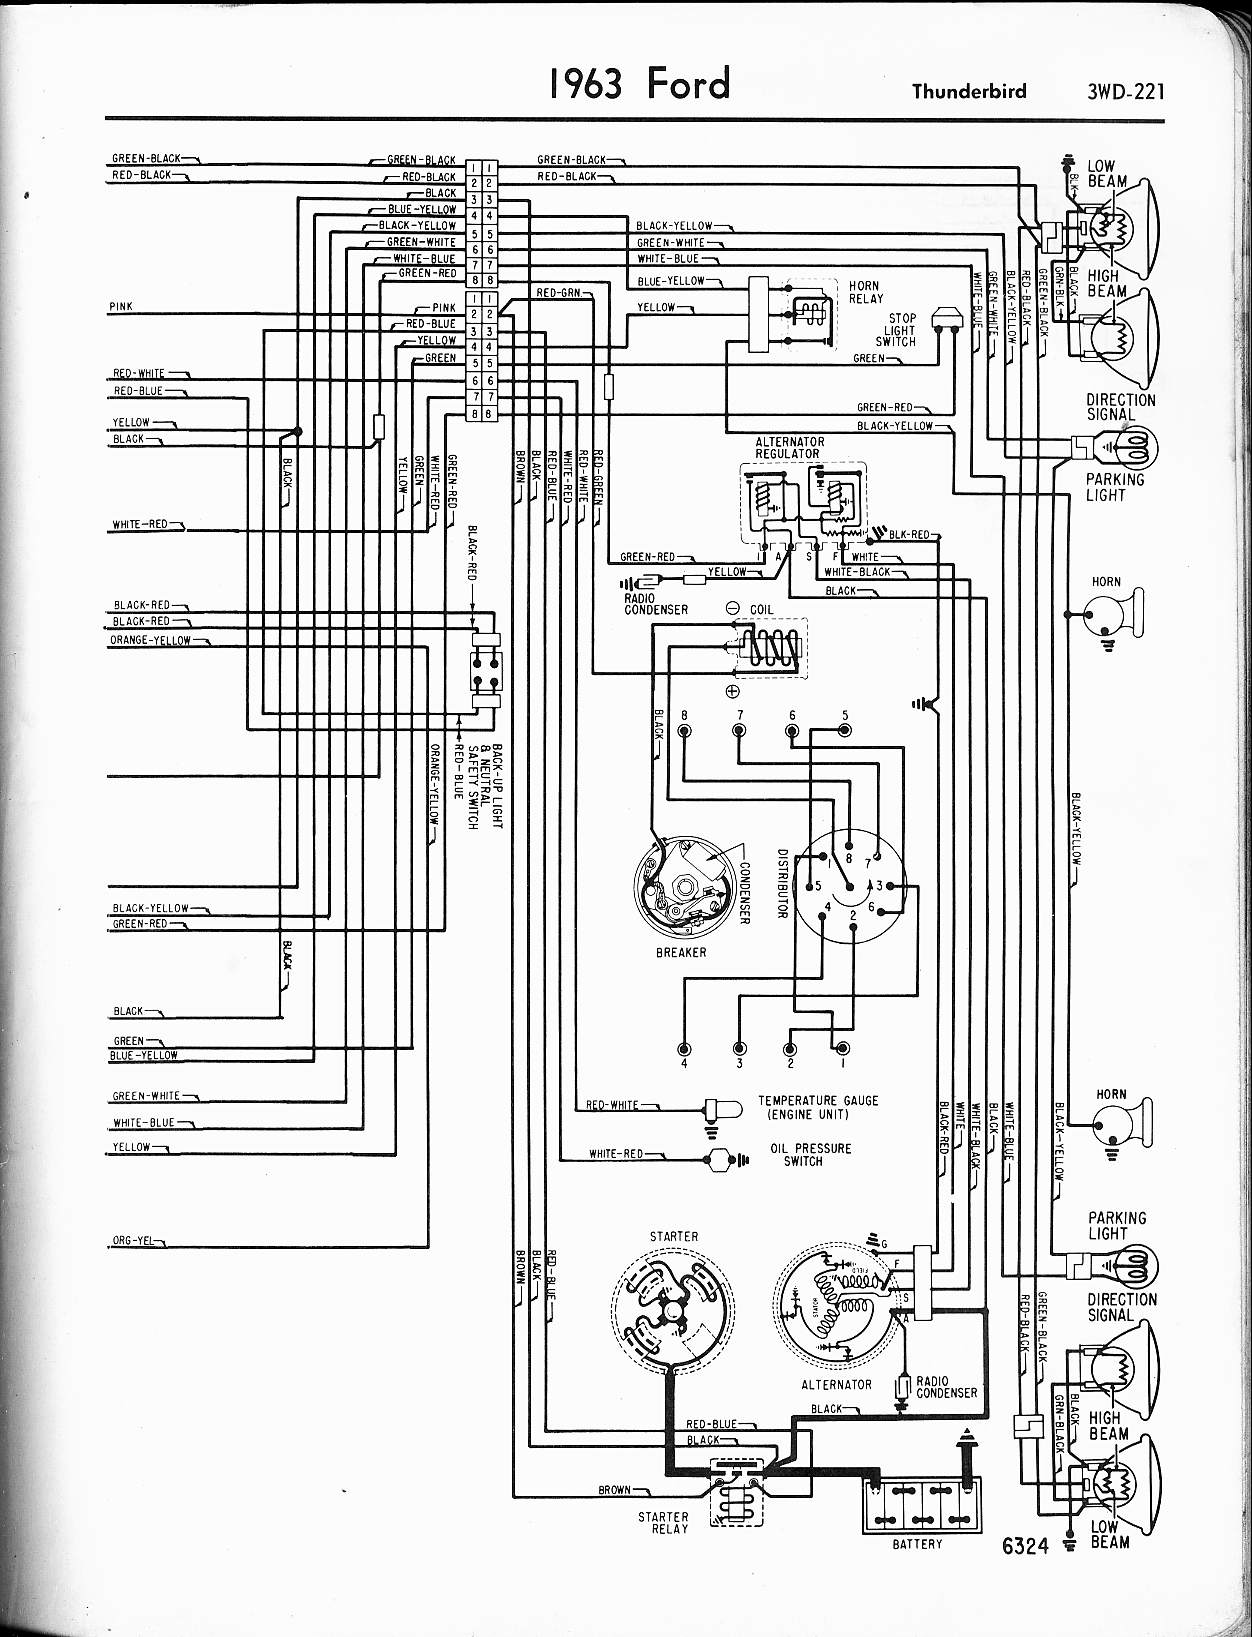 57-65 Ford Wiring Diagrams on turn signal capacitor, turn up txt, turn signal cruise control, turn signal connectors, turn signal troubleshooting, turn signals for rhino, simple turn signal schematic, turn signal timer, turn signal repair, turn signal switch schematic, turn signal relay, turn signals chrome glow, turn signals wiring in old cars, 1991 ford explorer schematic, harley turn signal schematic, turn signal fuse, signal generator schematic, turn signal hood, signal flasher schematic, turn signal wire,